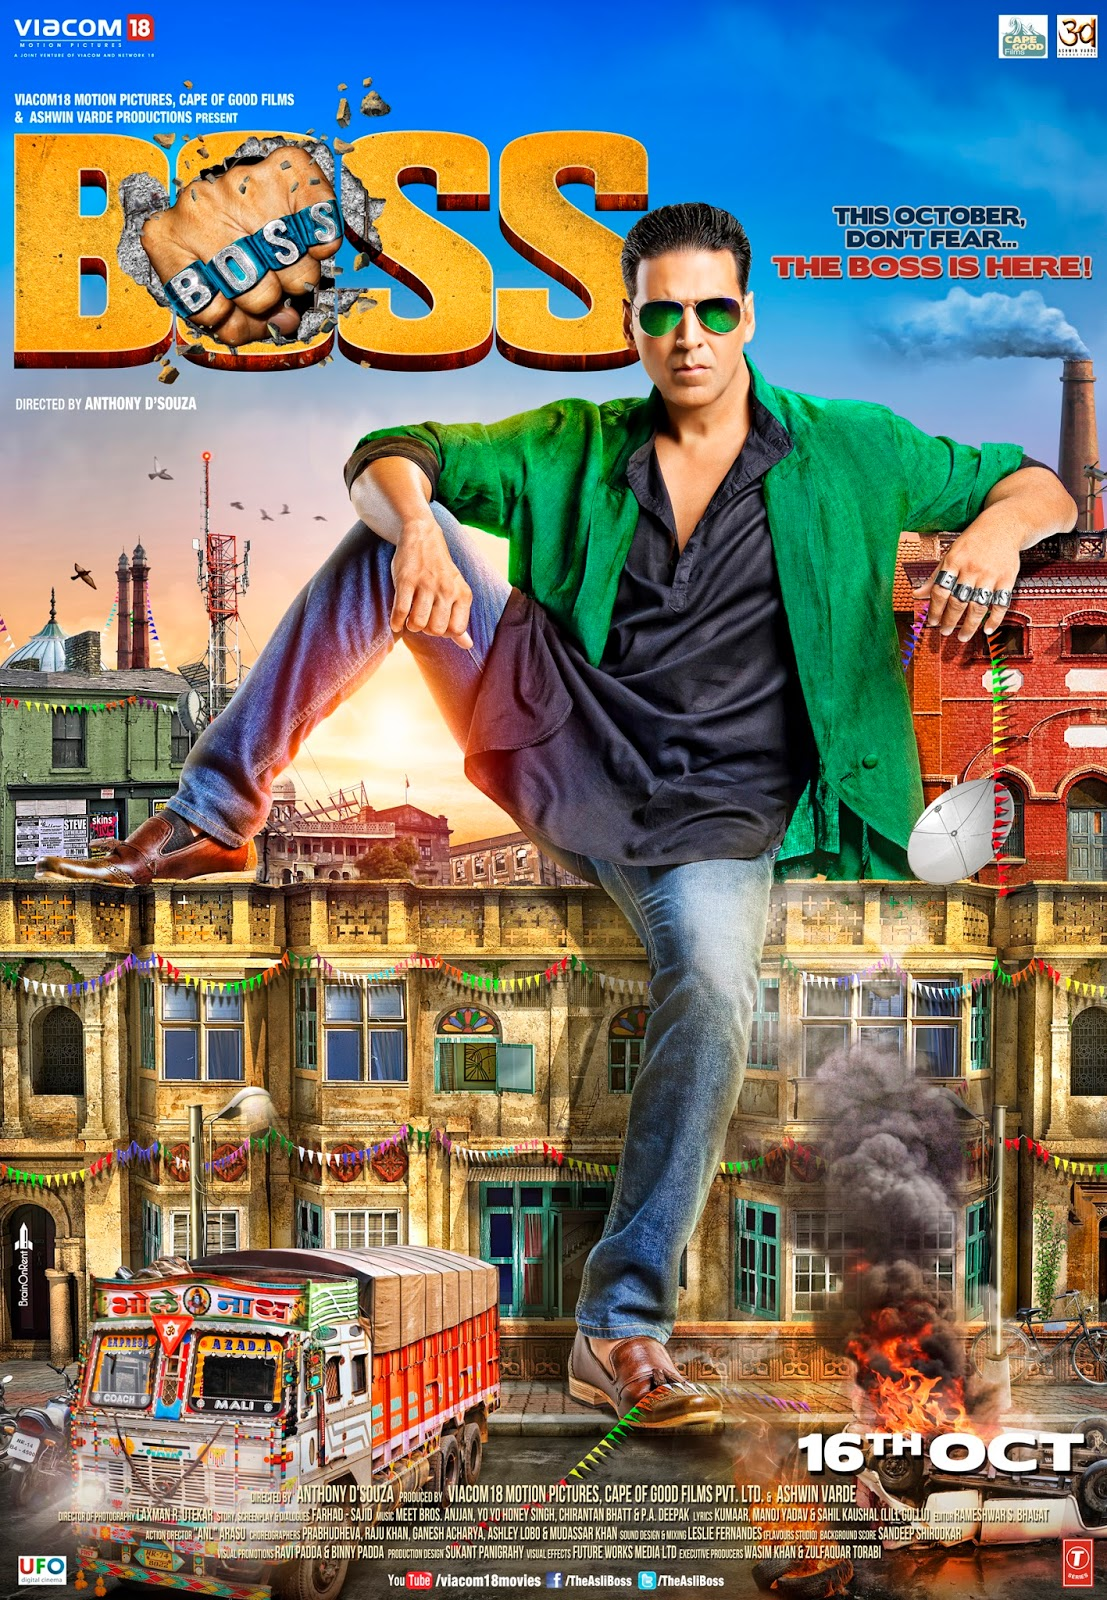 Free Download Boss Movie Wallpapers Full Hd Free Download Wallpaper